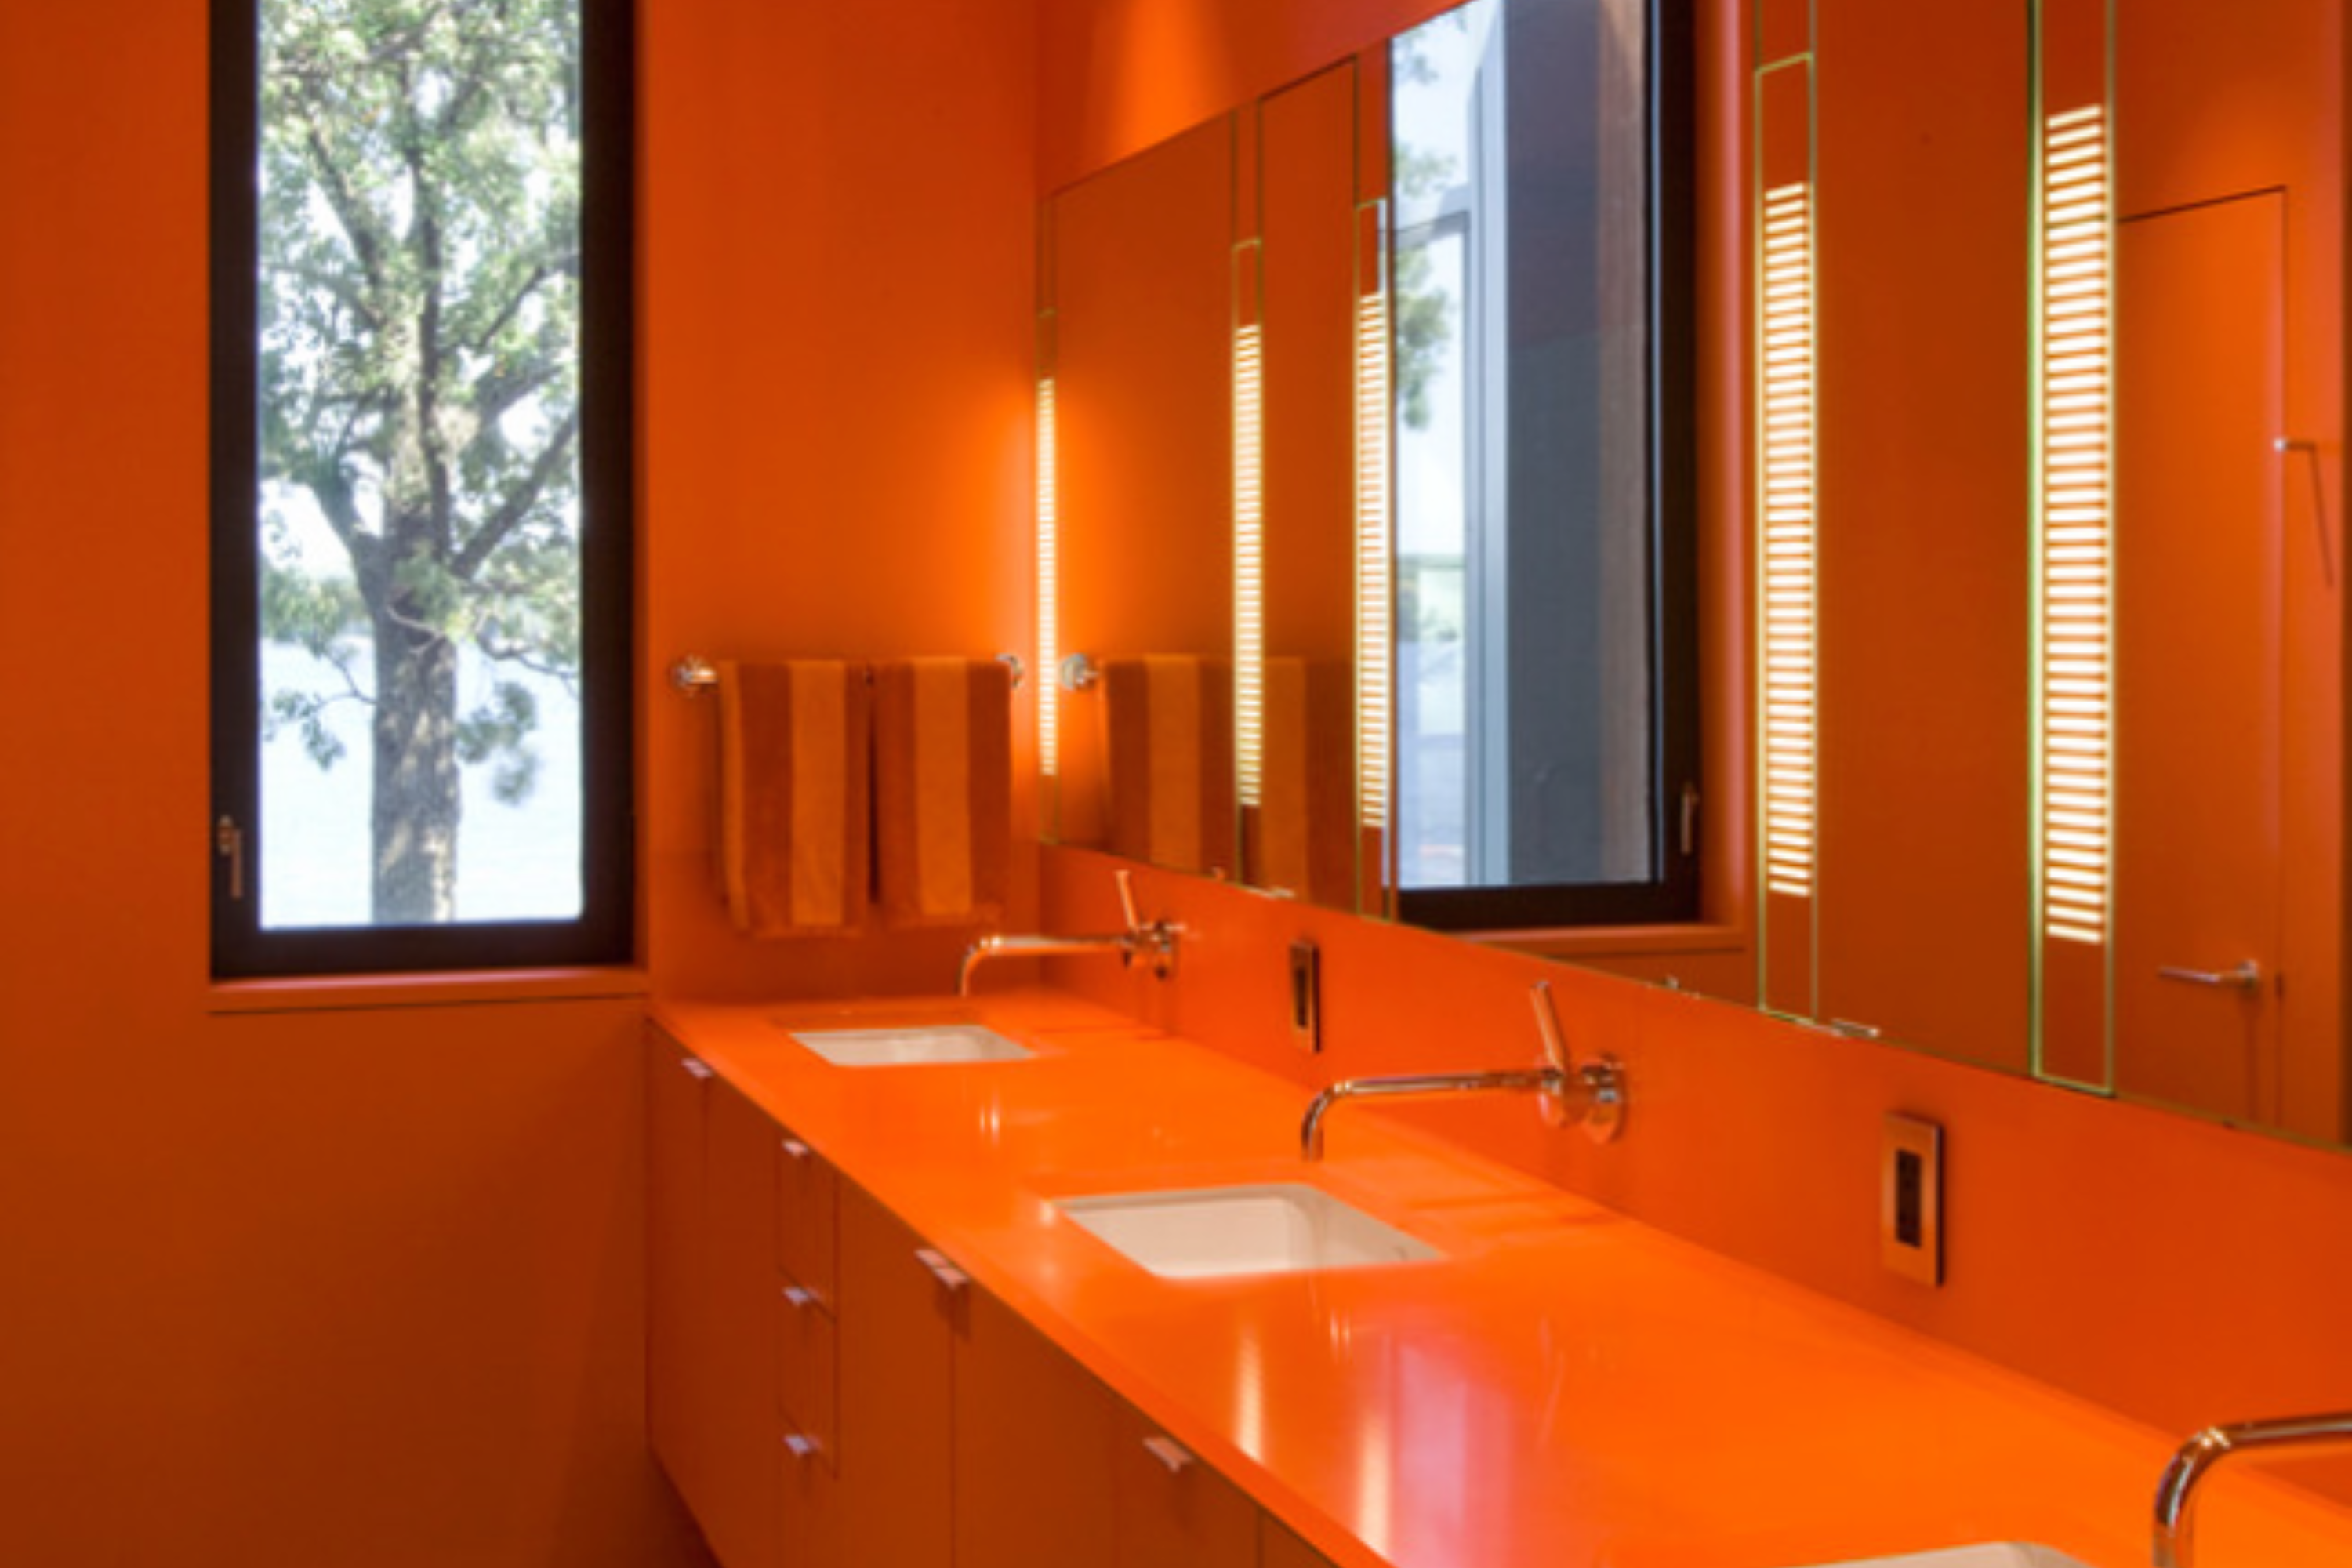 10 Mouthwatering Ways to Decorate with Orange